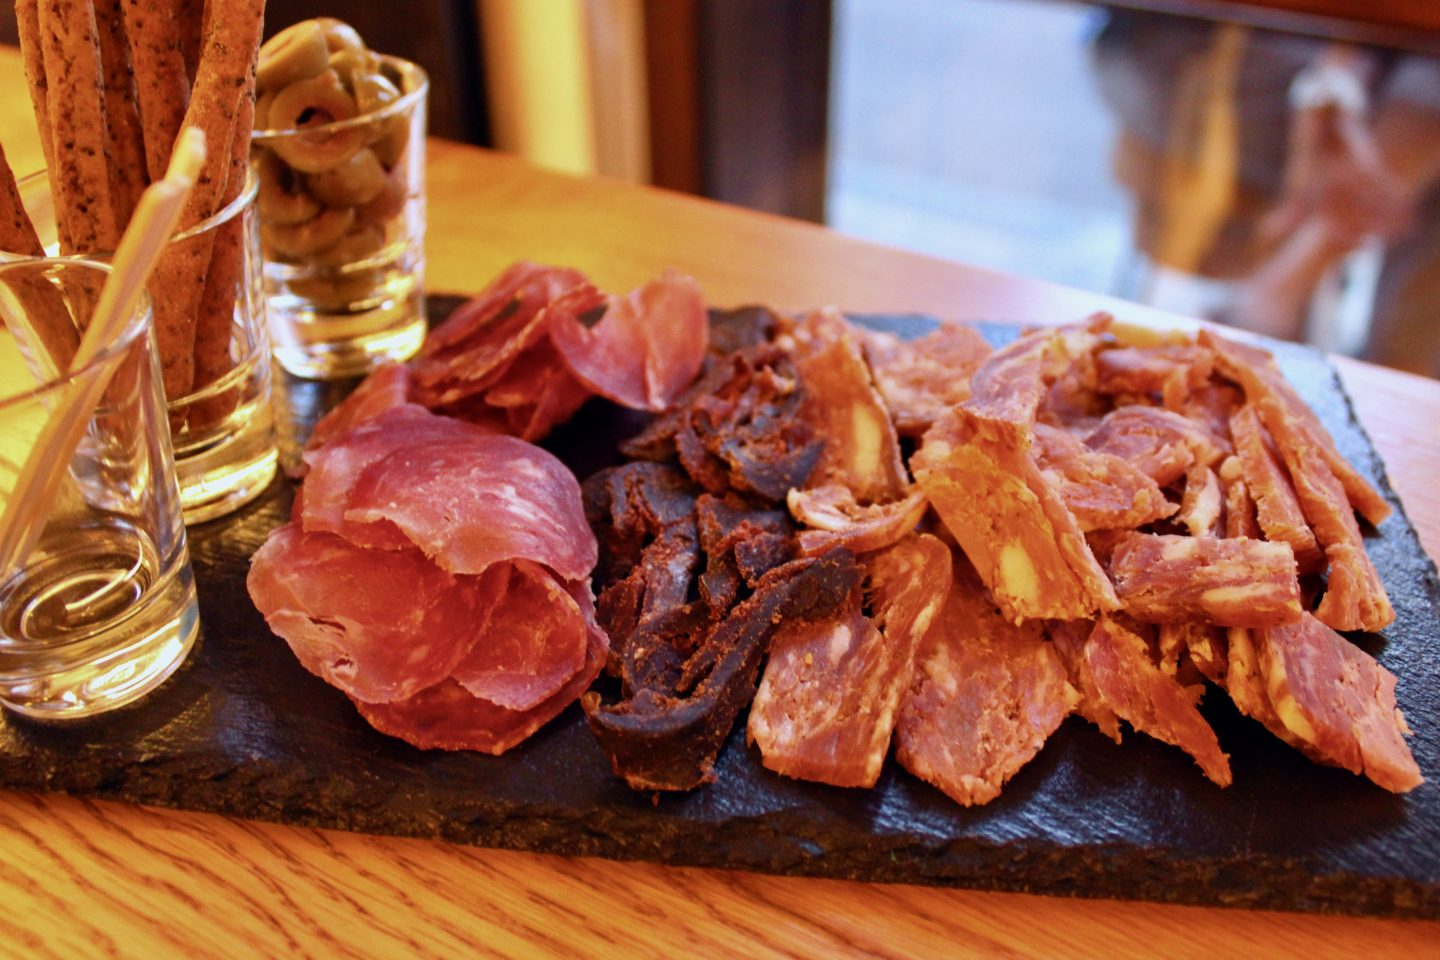 traditional bulgarian food in sofia: a plate of cured meats